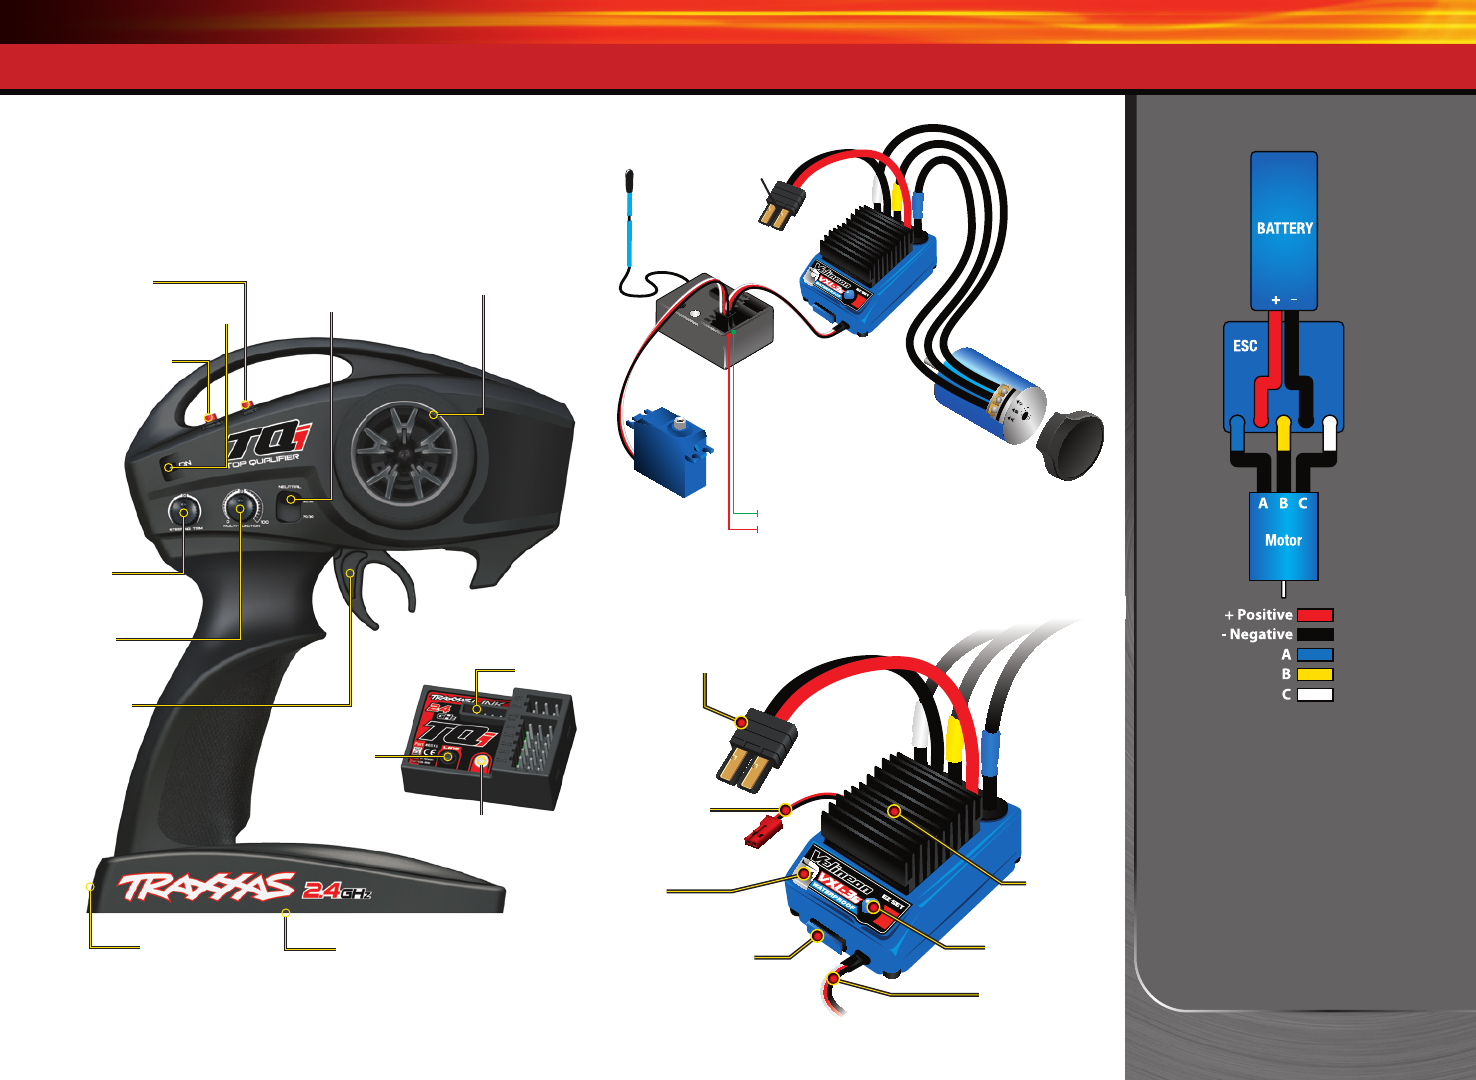 42d10b11 3234 4659 bbbf a55e537cad96 bgd page 13 of traxxas universal remote model 3707 3707l user guide traxxas tqi receiver wiring diagram at virtualis.co